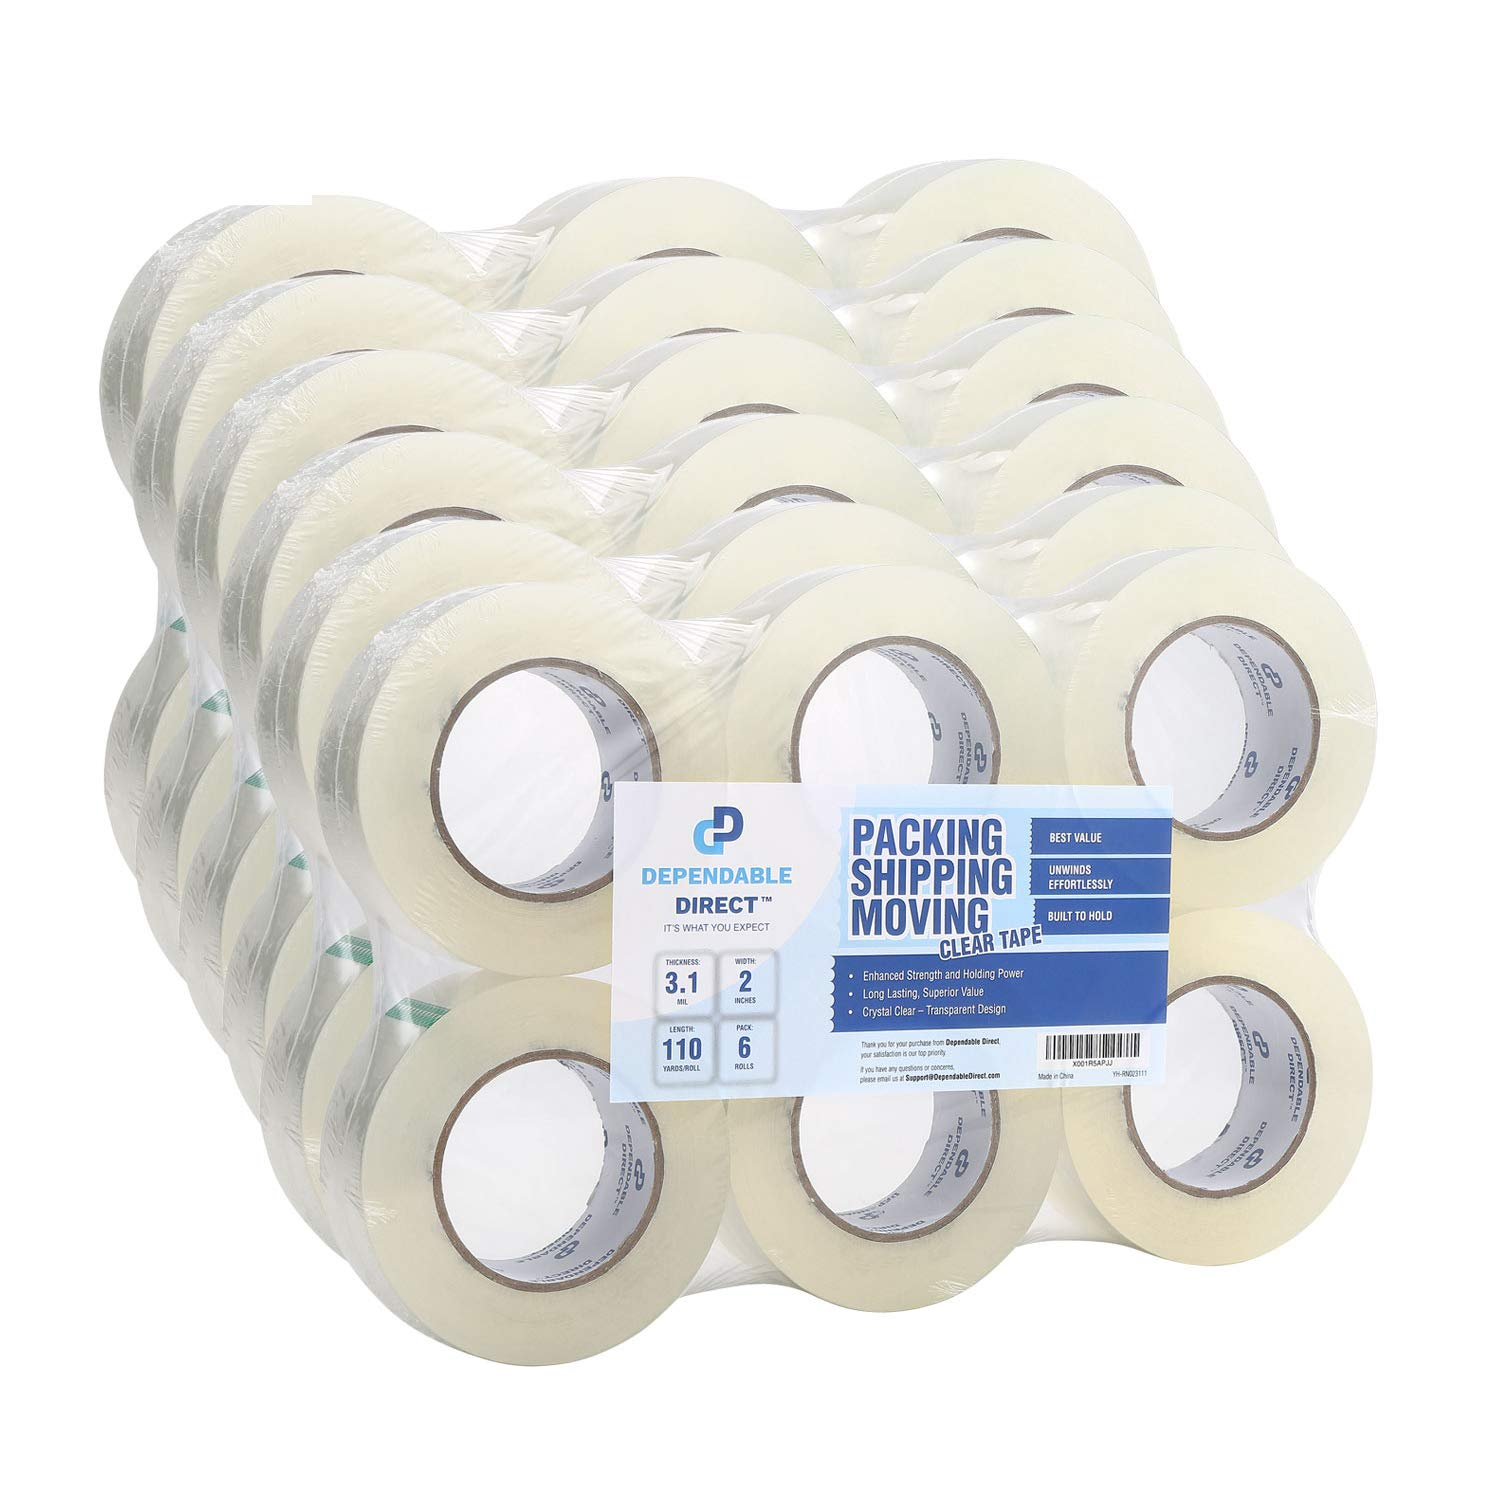 Industrial Grade Clear Packing Tape (36 Rolls) - Extra Strong - 110 Yards per Roll - 2'' Wide x 3.1 mil Thick, Acrylic Adhesive Heavy Duty Tape for Box Office Moving Packaging Shipping